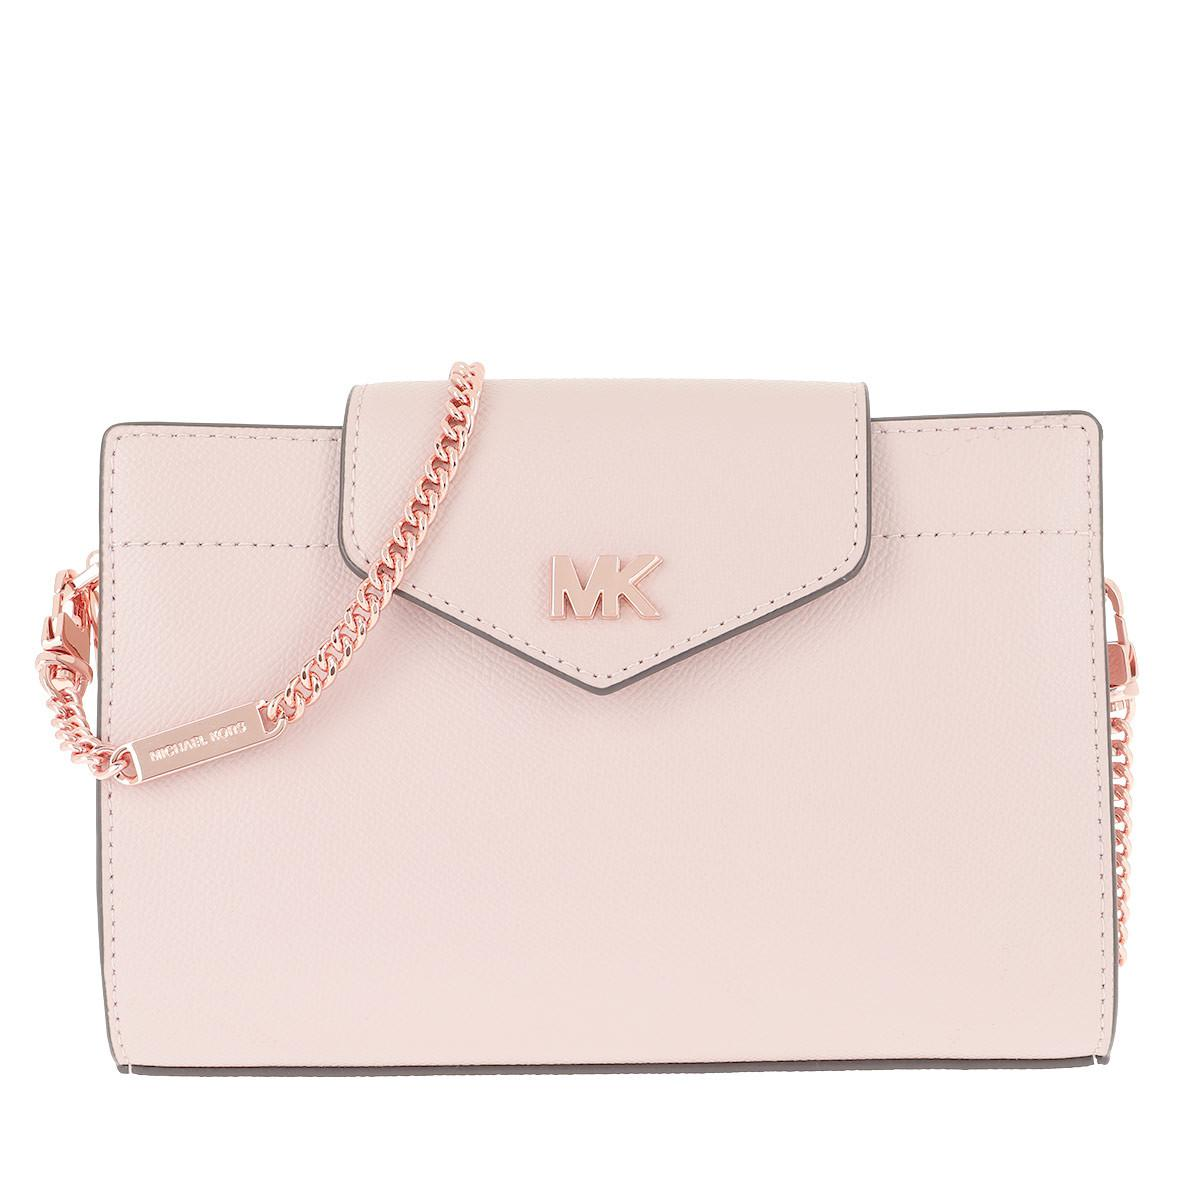 856290adcf53fd Michael Kors - Md Convertible Xbody Clutch Soft Pink - Lyst. View fullscreen